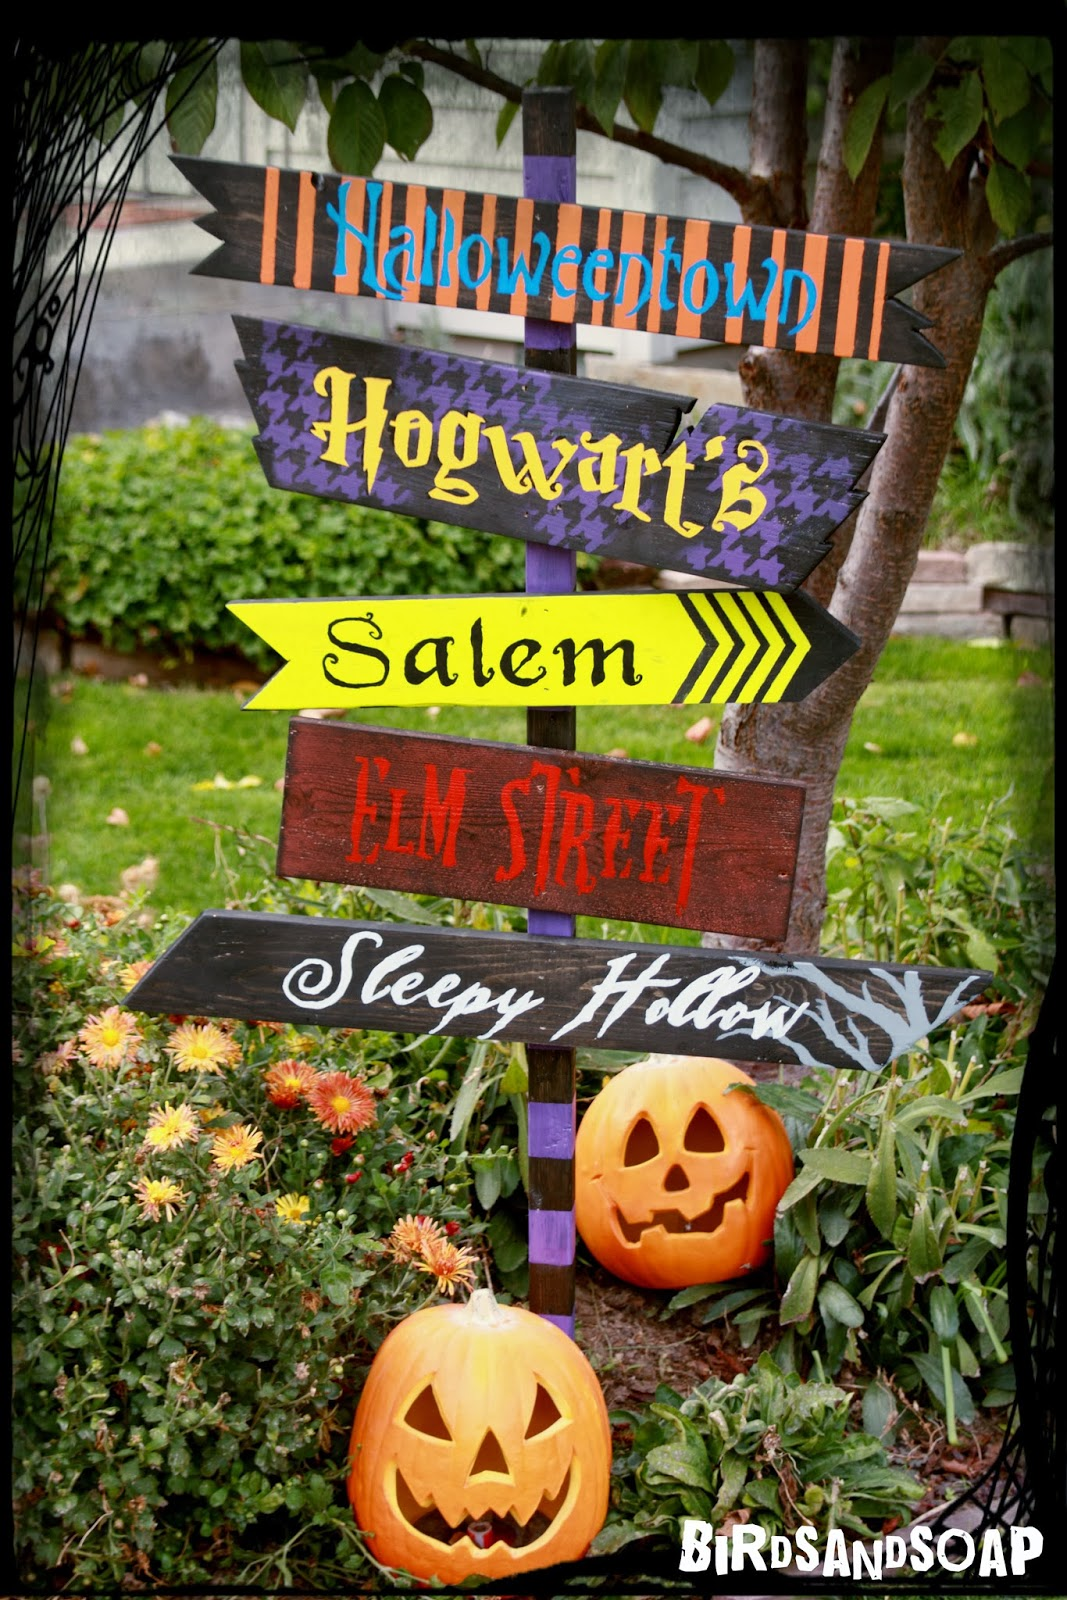 diy halloween yard sign. Black Bedroom Furniture Sets. Home Design Ideas